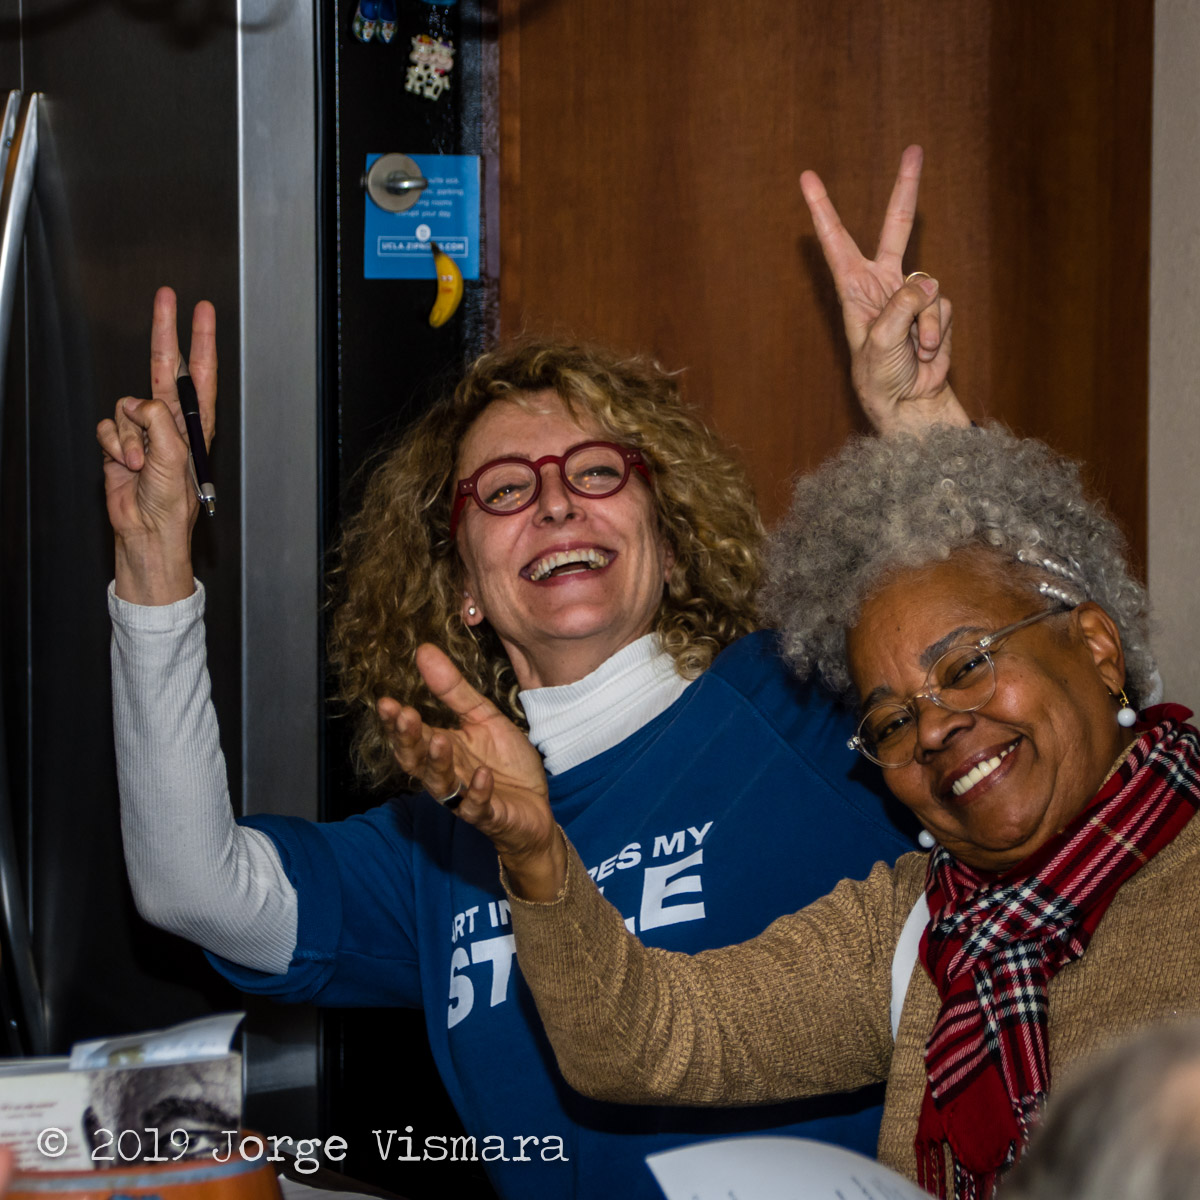 Ana Gazzola and Sonia Santos. Supporters and part of the cast since 2016!